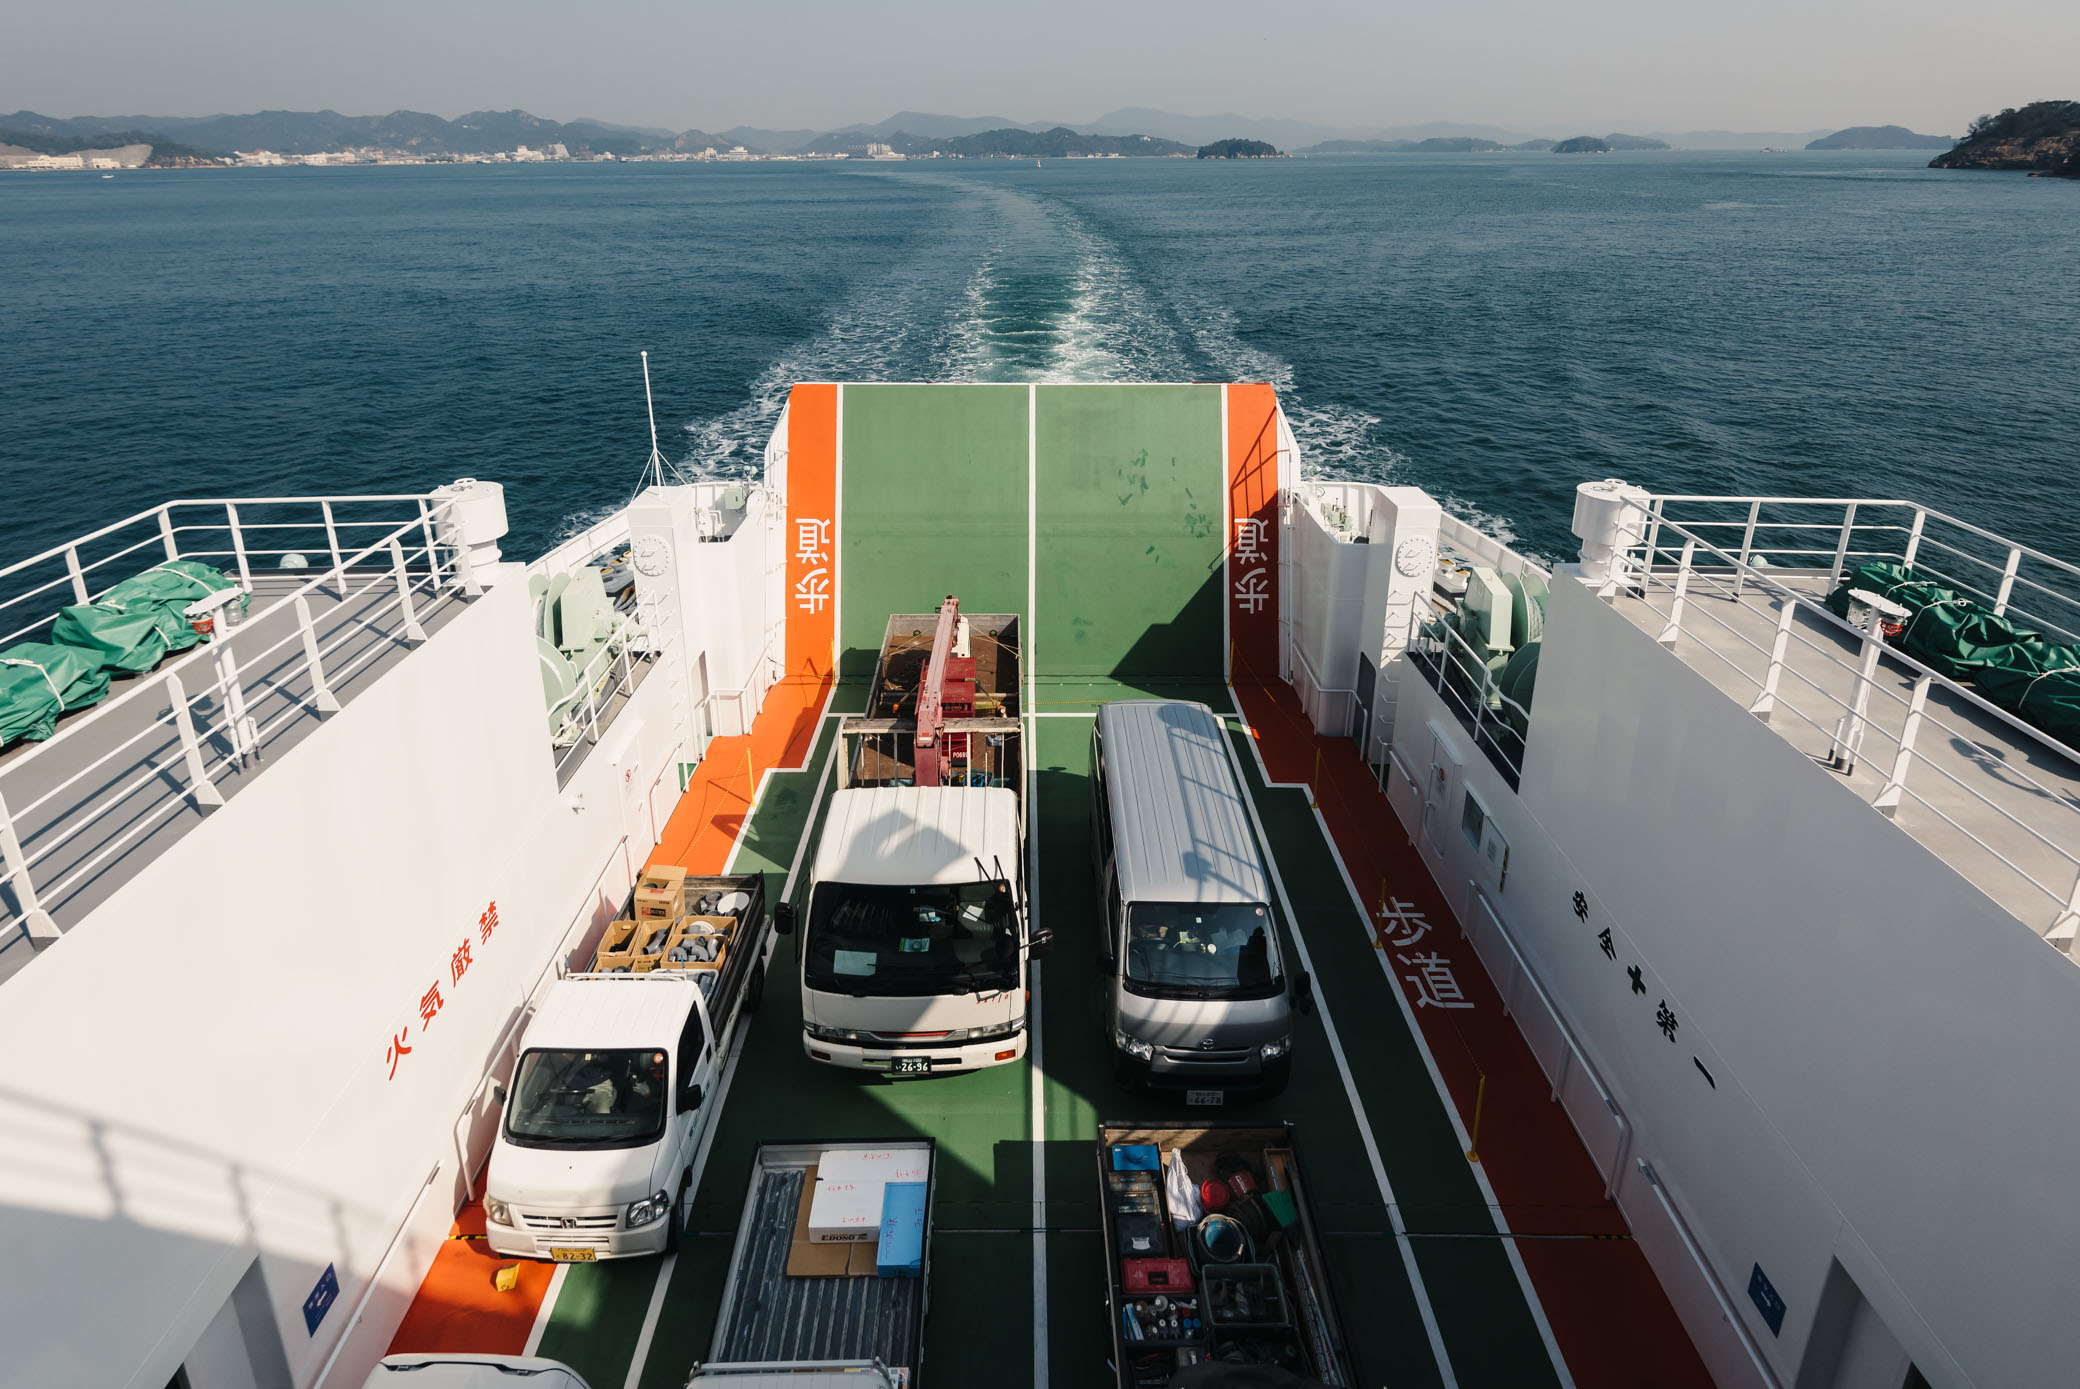 On the ferry from Uno to Naoshima